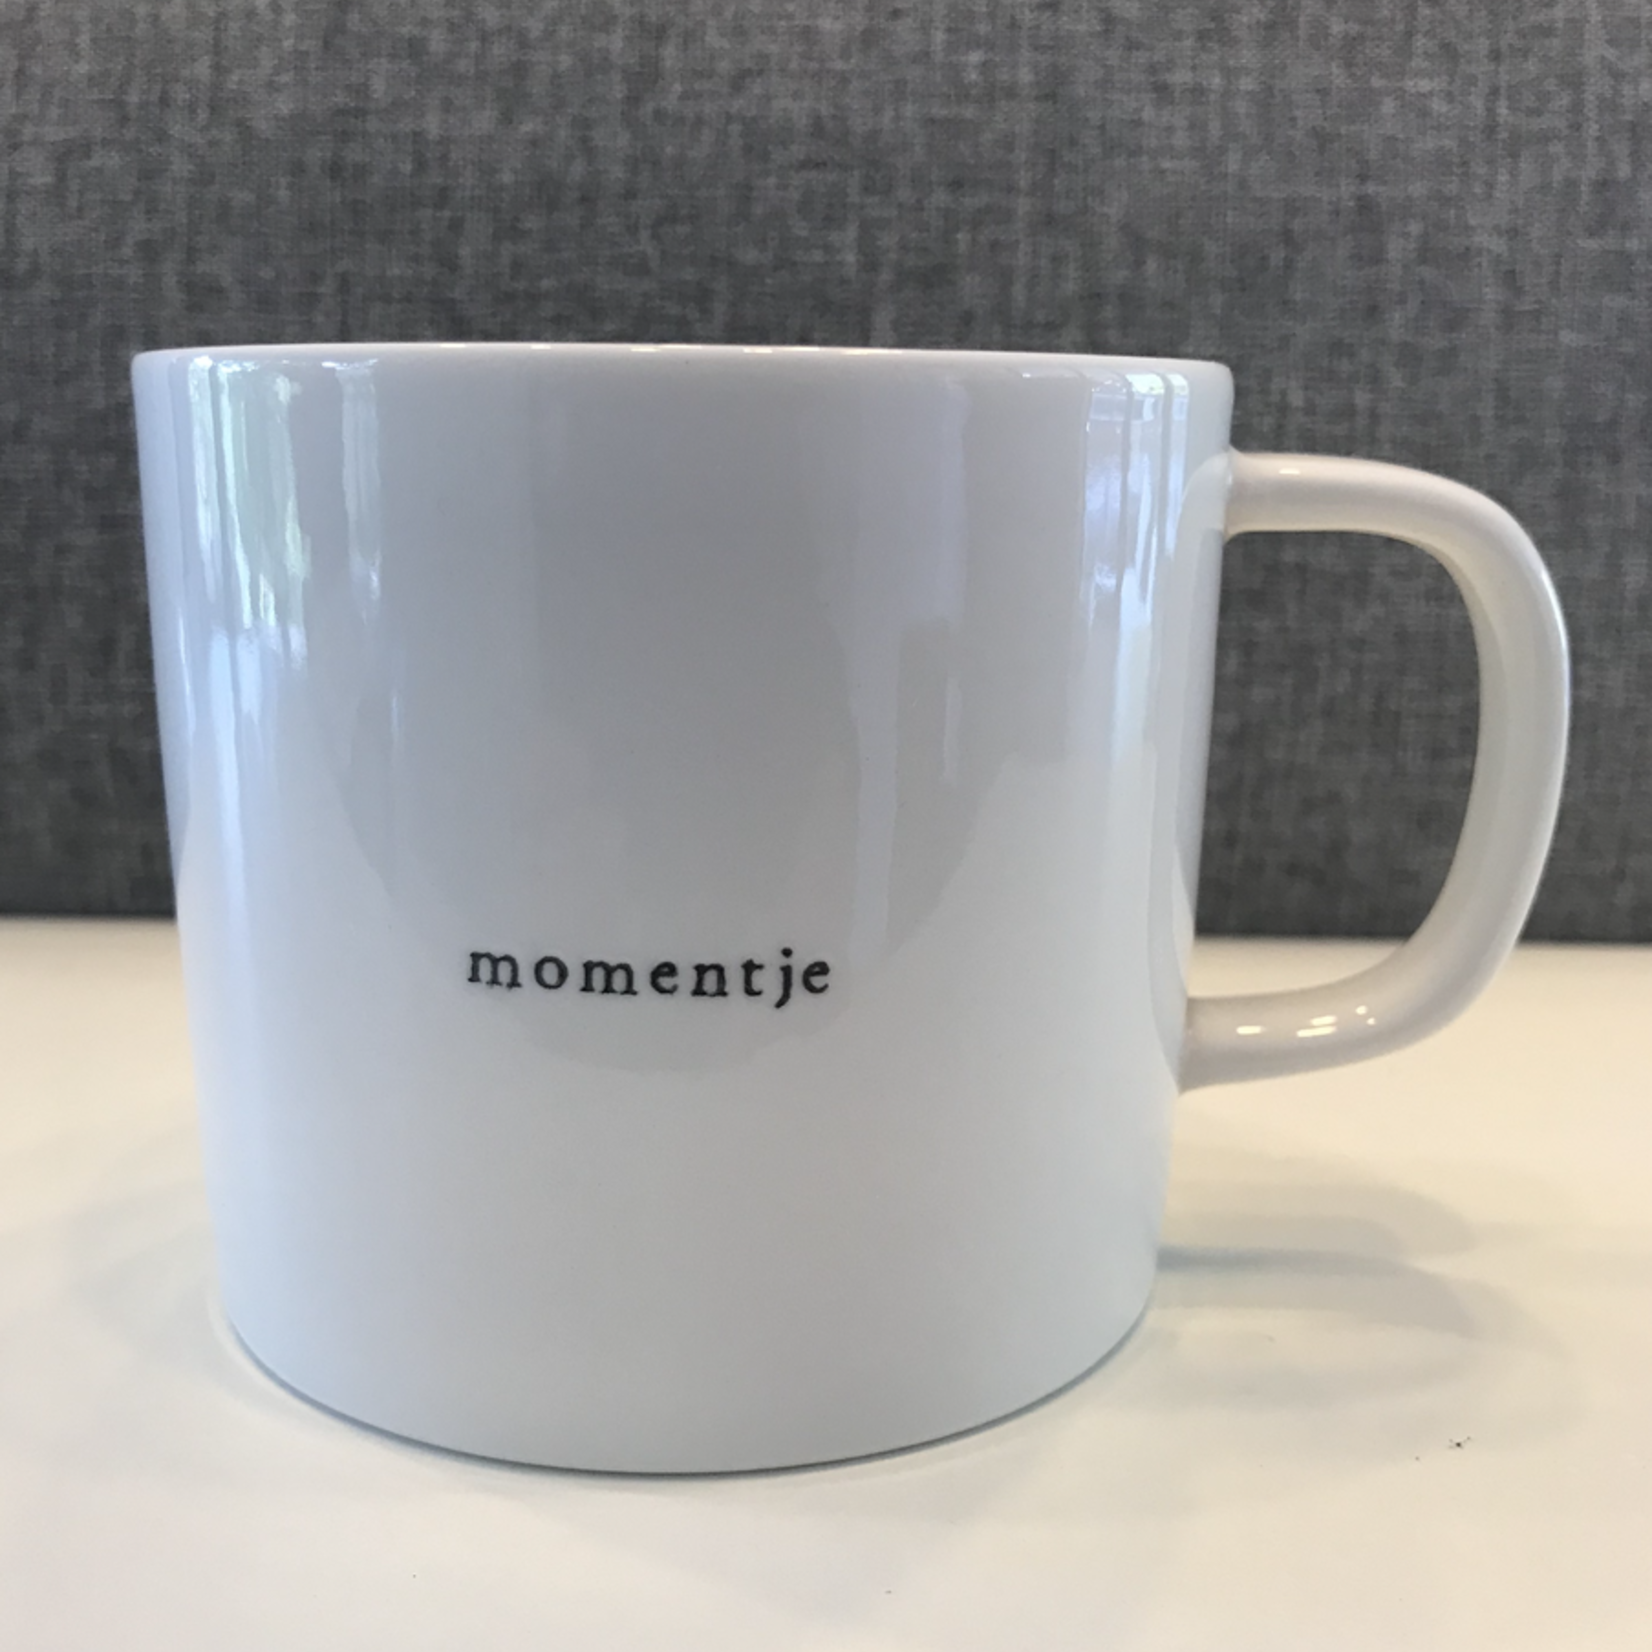 Koffiemok - Momentje - Wit